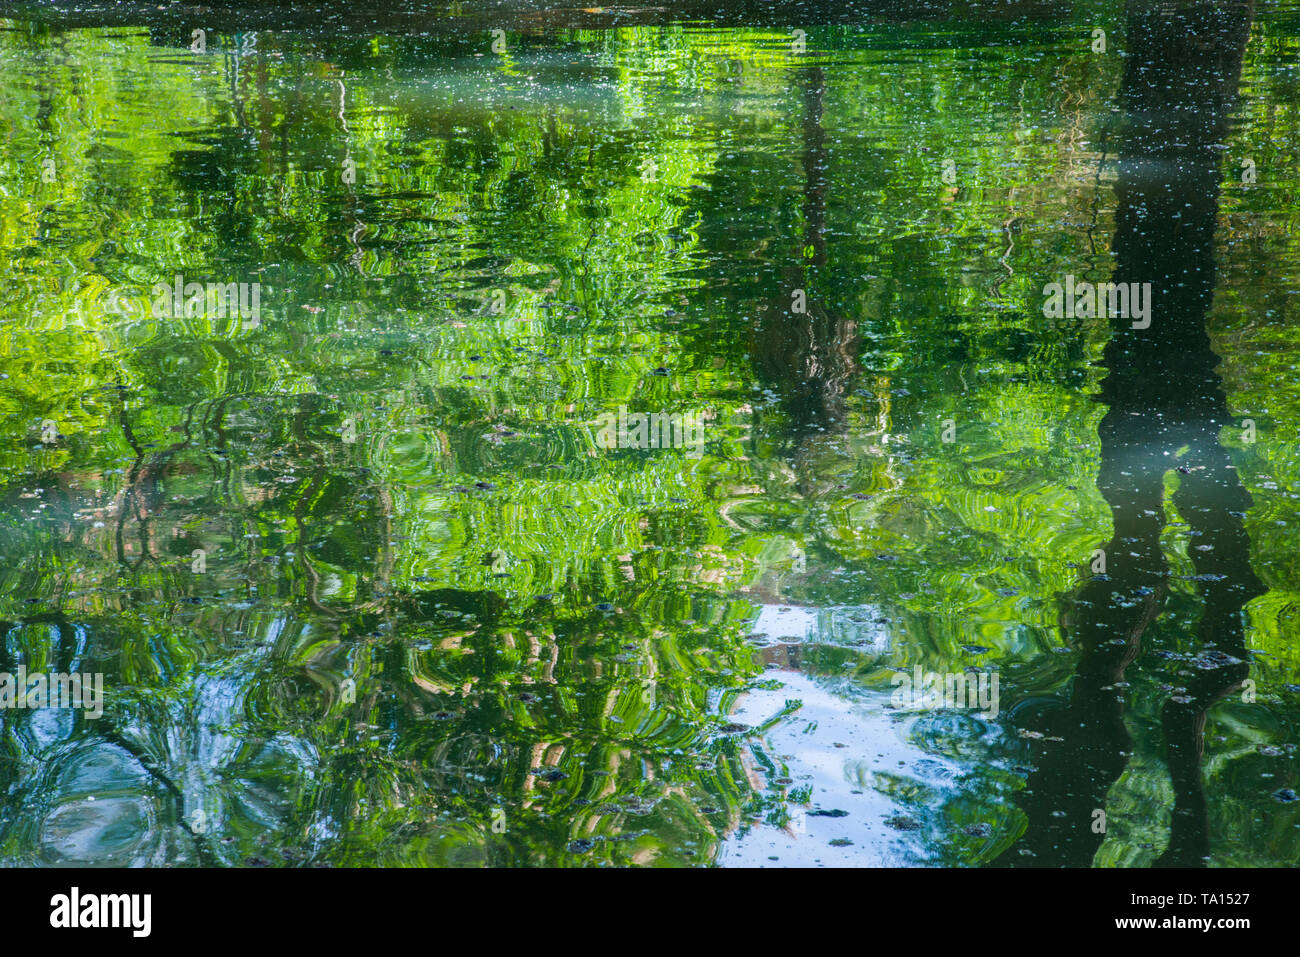 Water reflections. - Stock Image